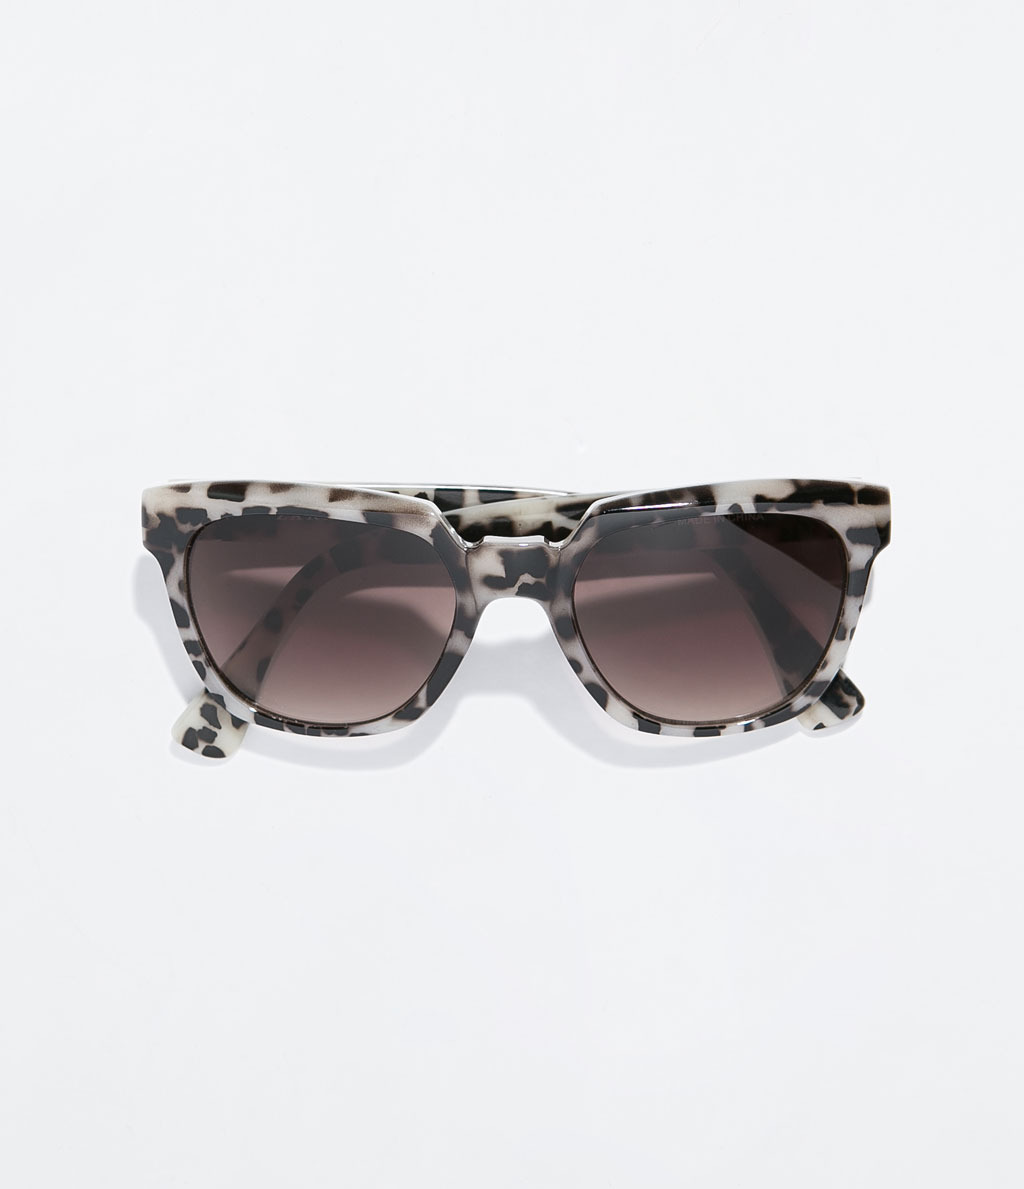 Tortoiseshell Pattern Sunglasses - predominant colour: ivory/cream; secondary colour: chocolate brown; occasions: casual, holiday; style: d frame; size: large; material: plastic/rubber; pattern: tortoiseshell; finish: plain; season: s/s 2014